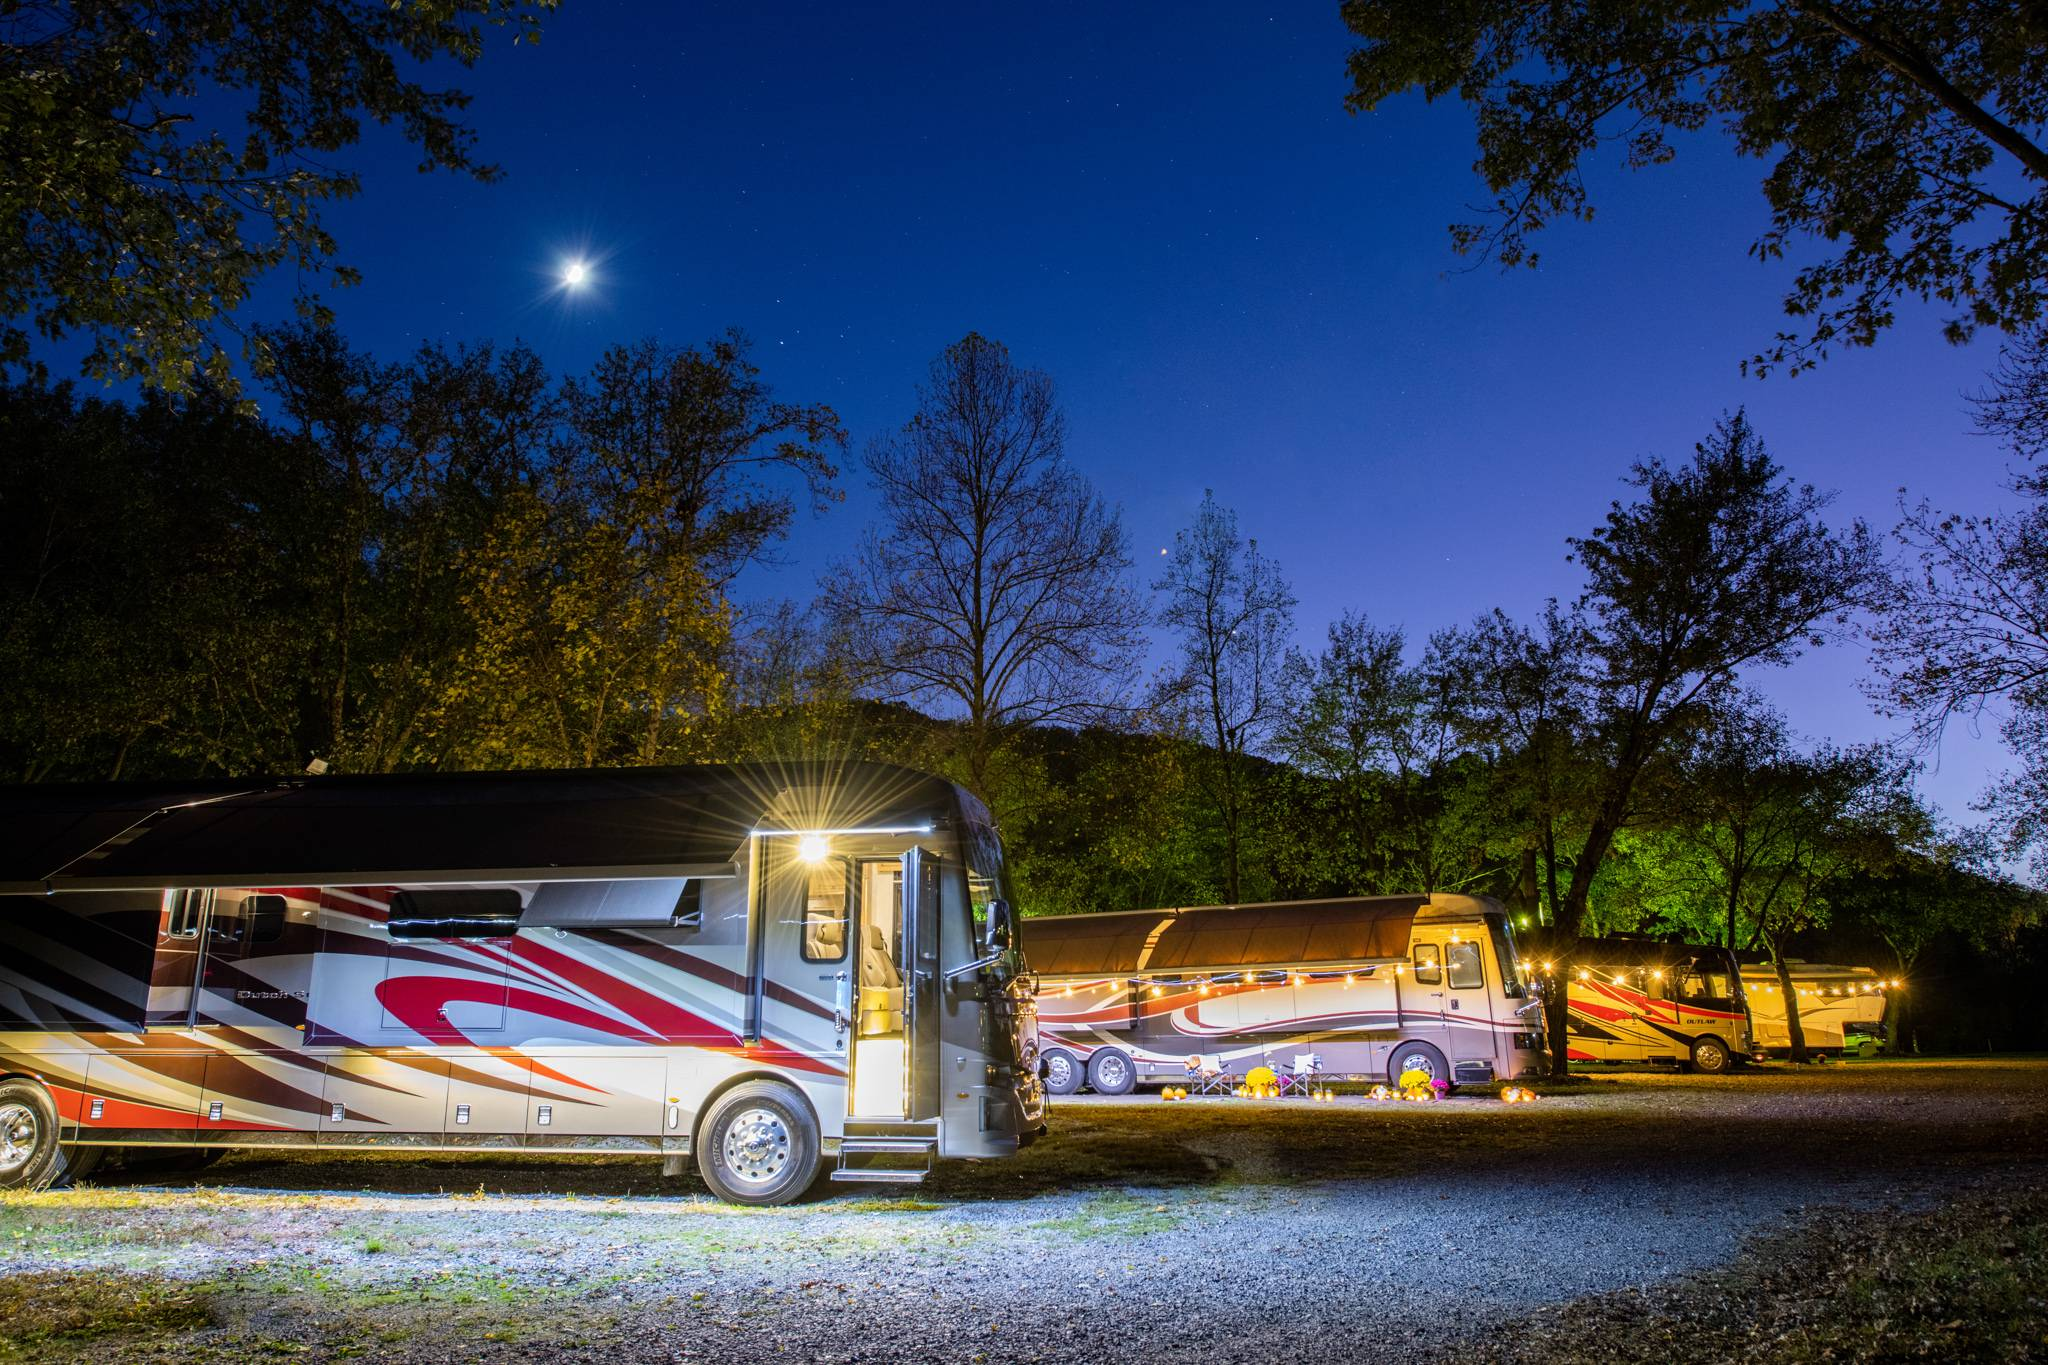 RVs in a resort at night.